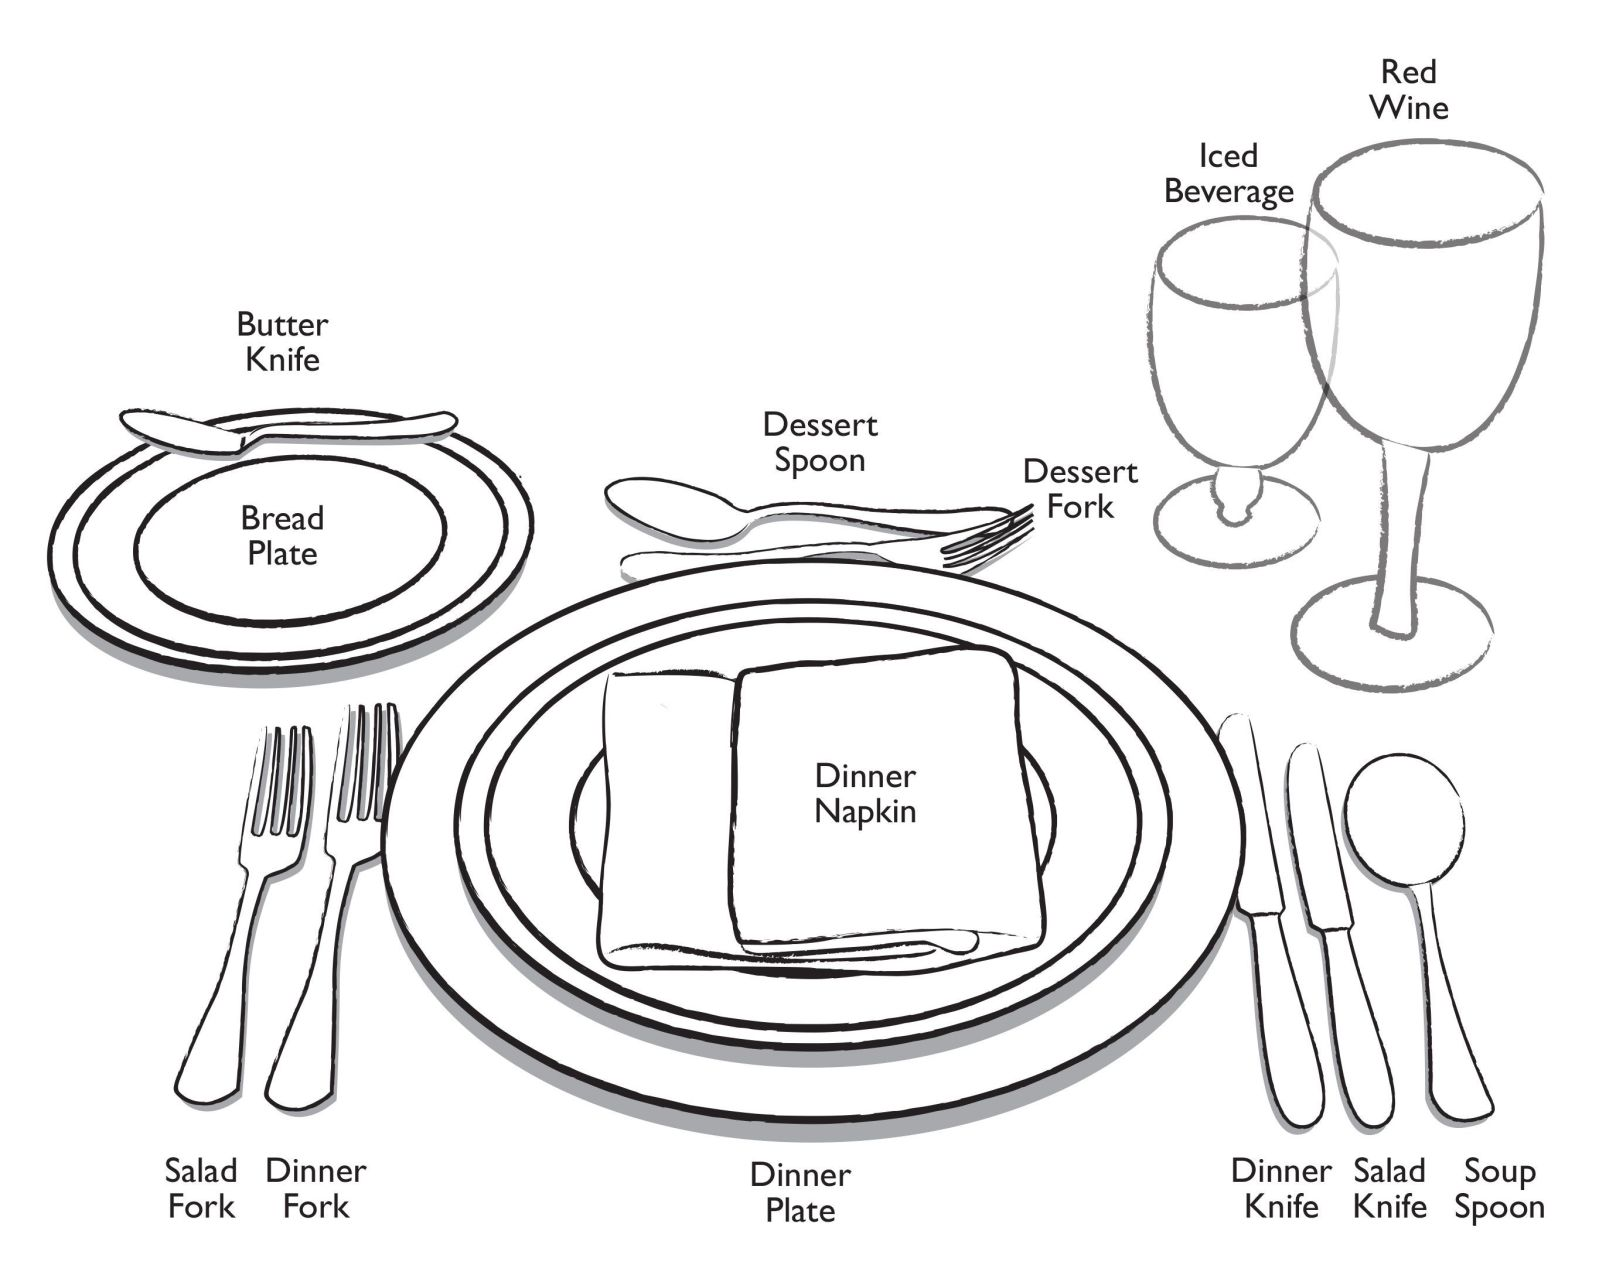 Mix and match elements to create the perfect Thanksgiving